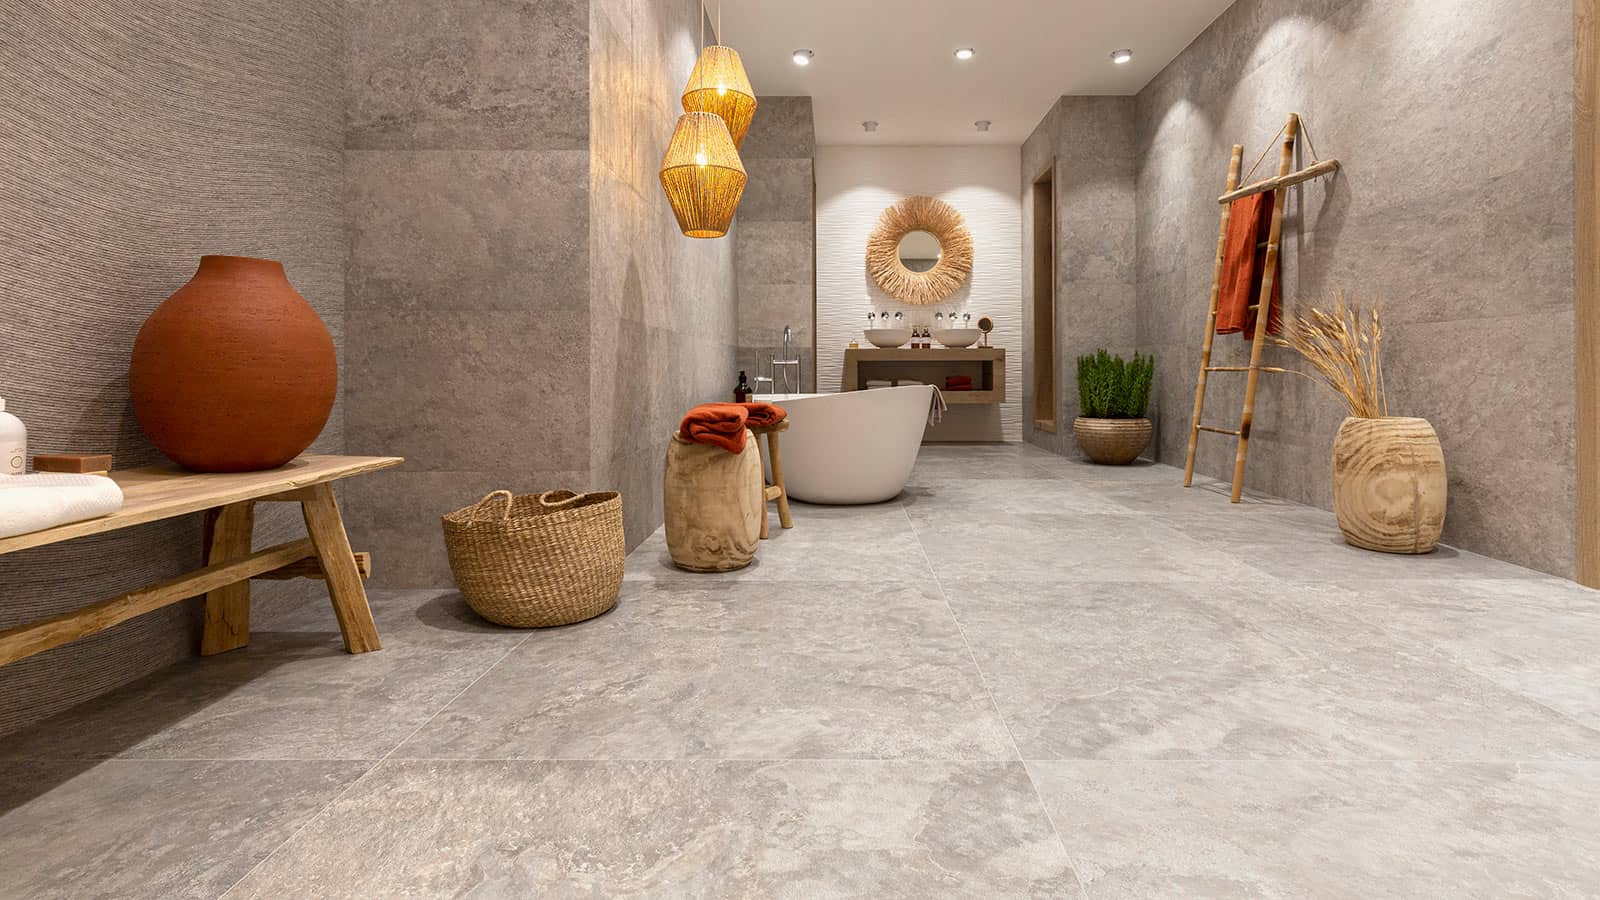 Affordable, high-quality floor and wall tiles in sizes, colours & materials for a practical, durable, totally individual new room.